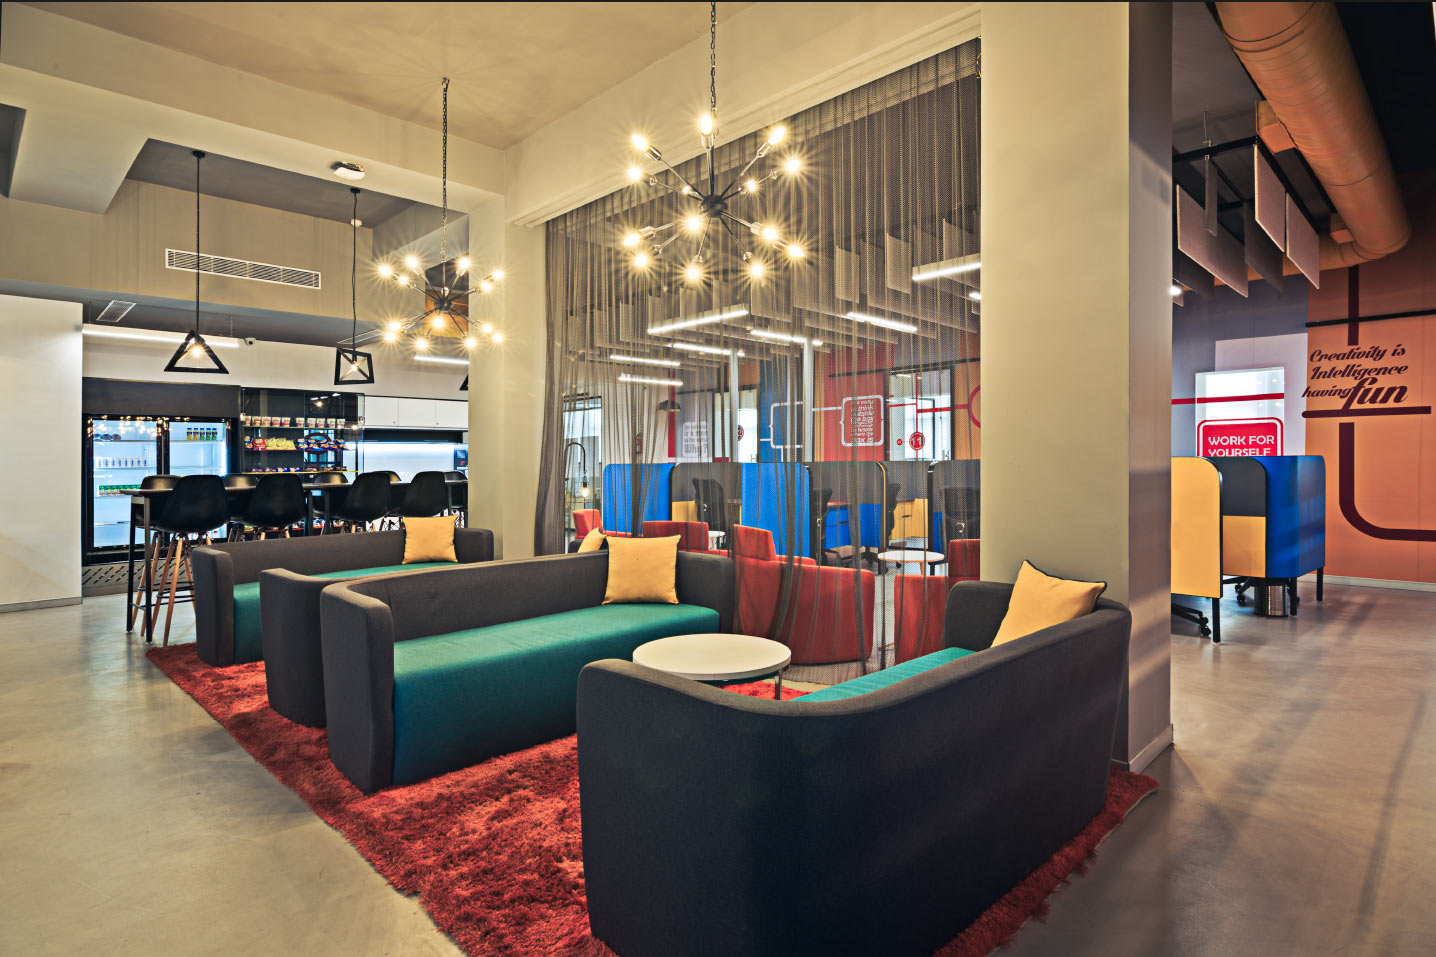 Five funky co-working spaces that will give you a taste of the Silicon Valley